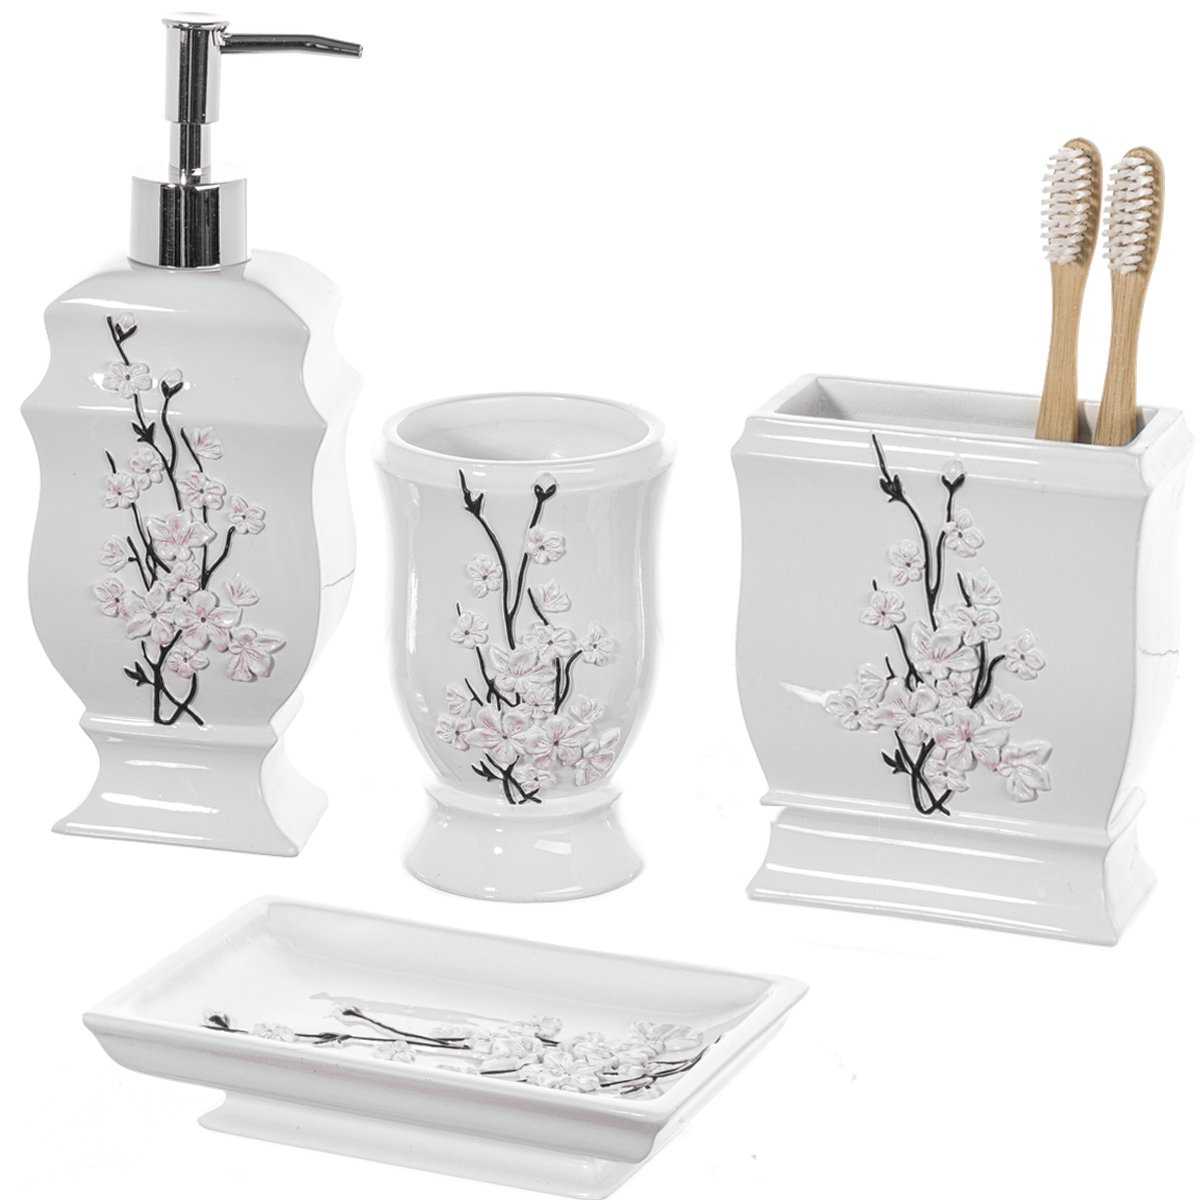 4 piece bathroom set soap dish dispenser toothbrush holder tumbler cup free ship ebay - Bathroom soap dish sets ...